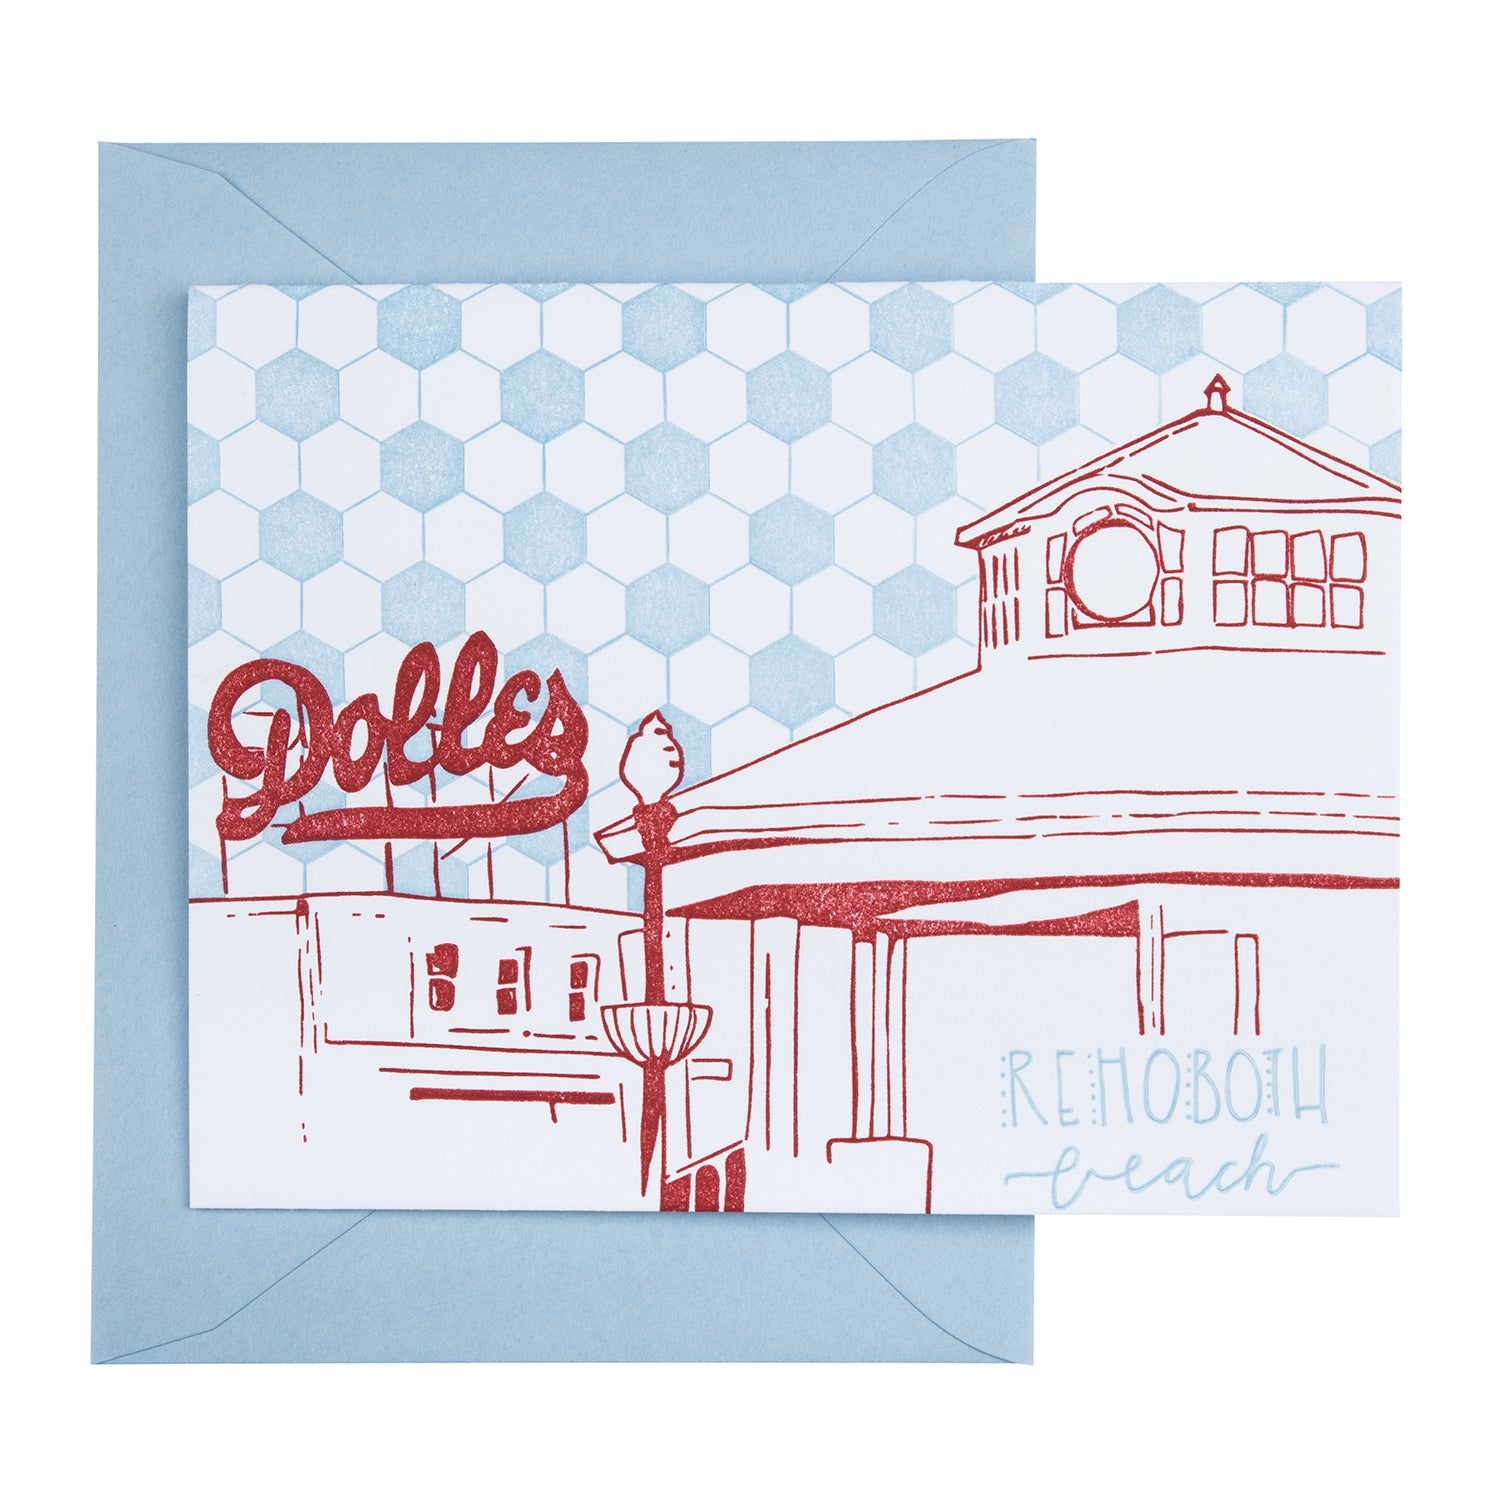 Rehoboth Beach Delaware | Boardwalk | Letterpress City Card